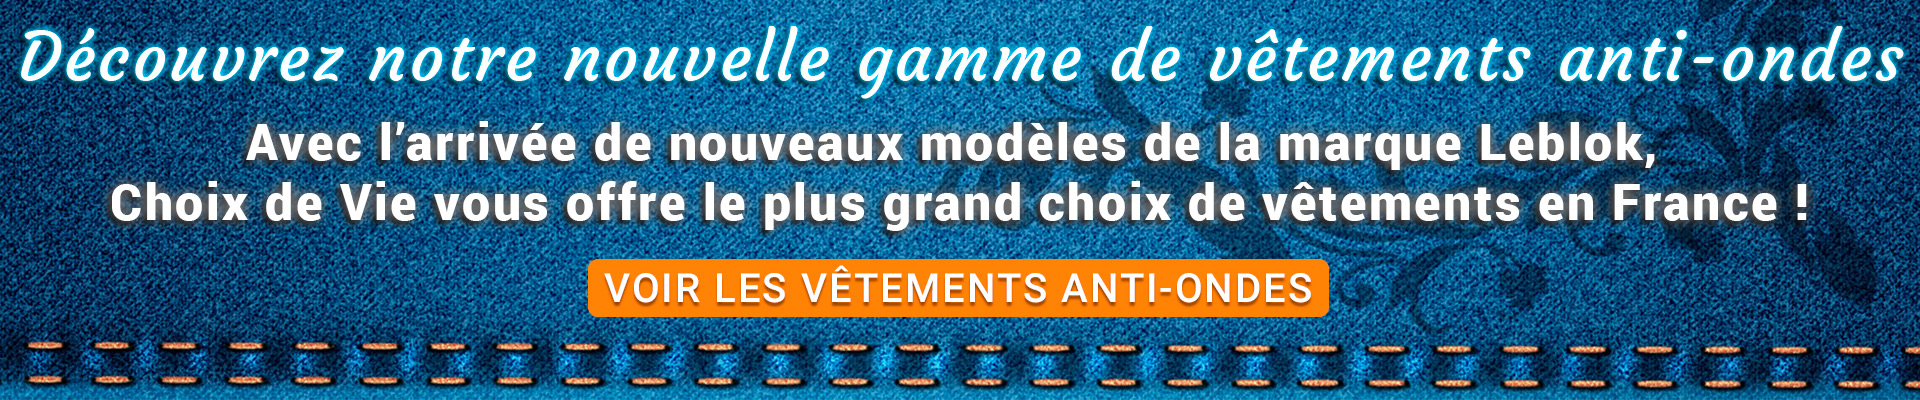 Vêtements anti-ondes